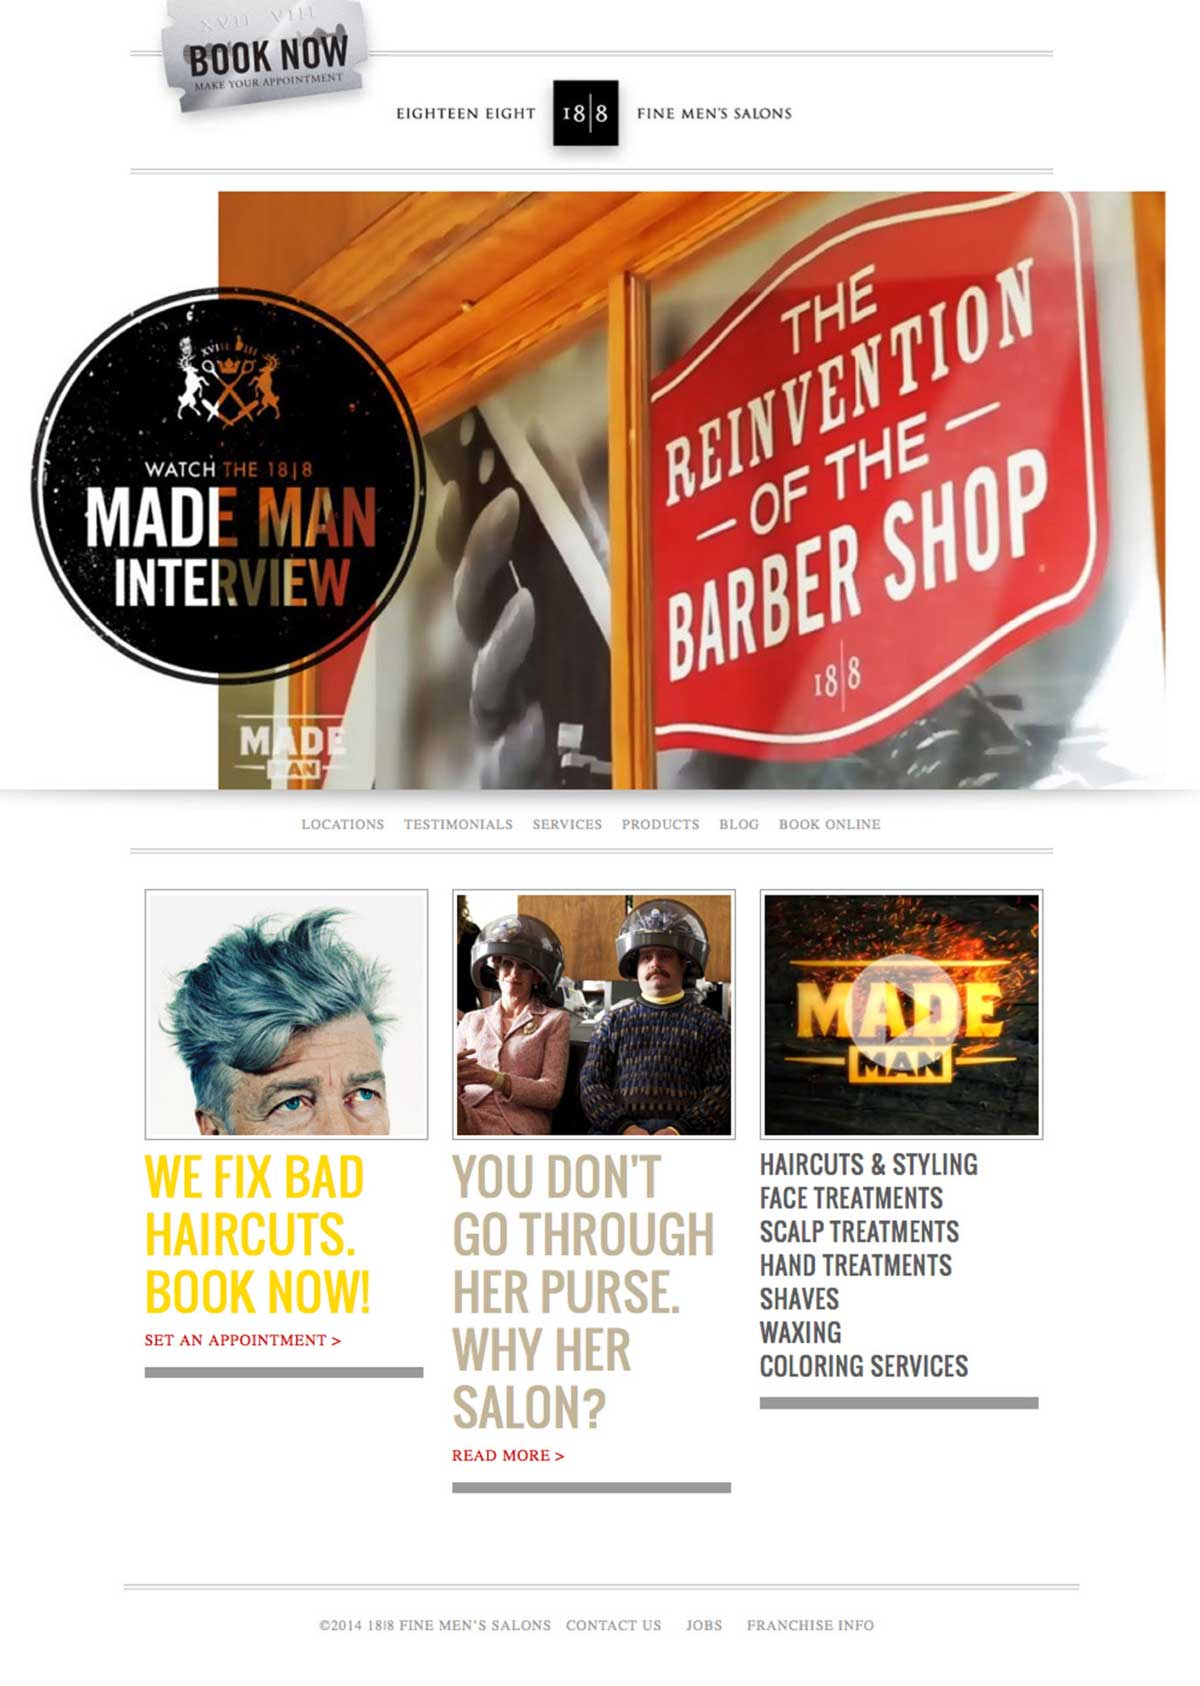 mens barber 18/8 website designs